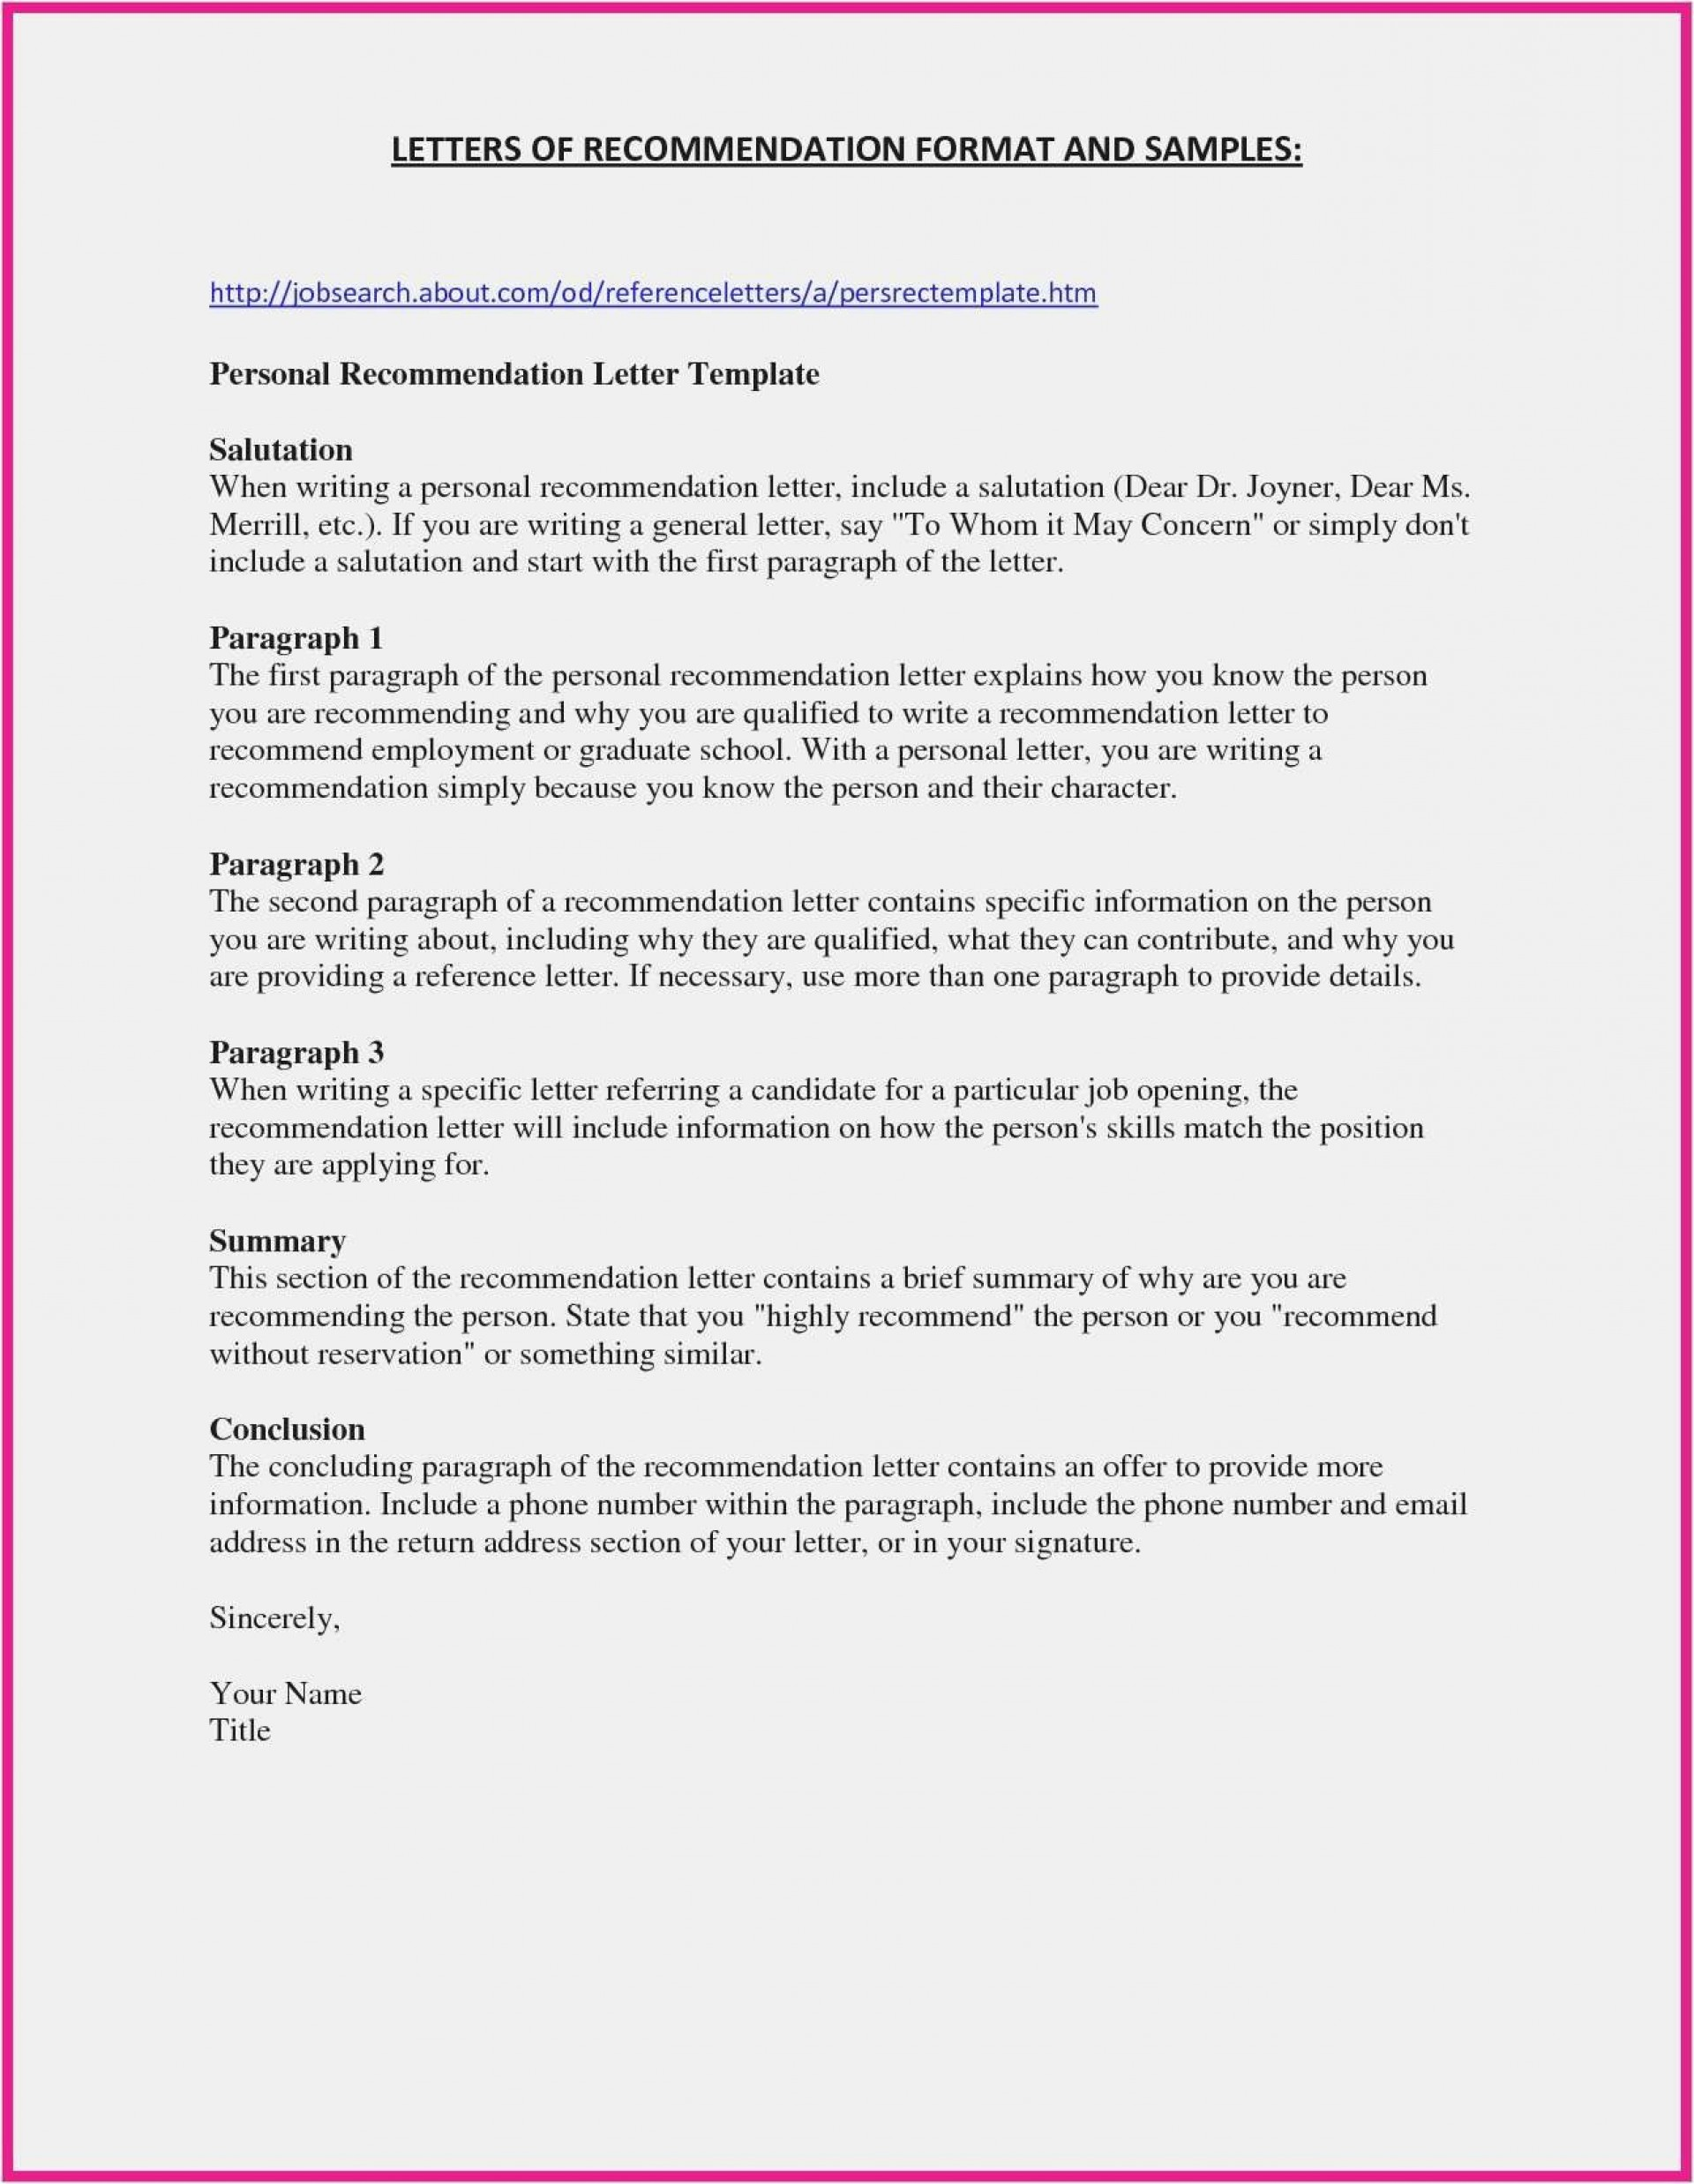 Personal Recommendation Letter Samples from www.addictionary.org